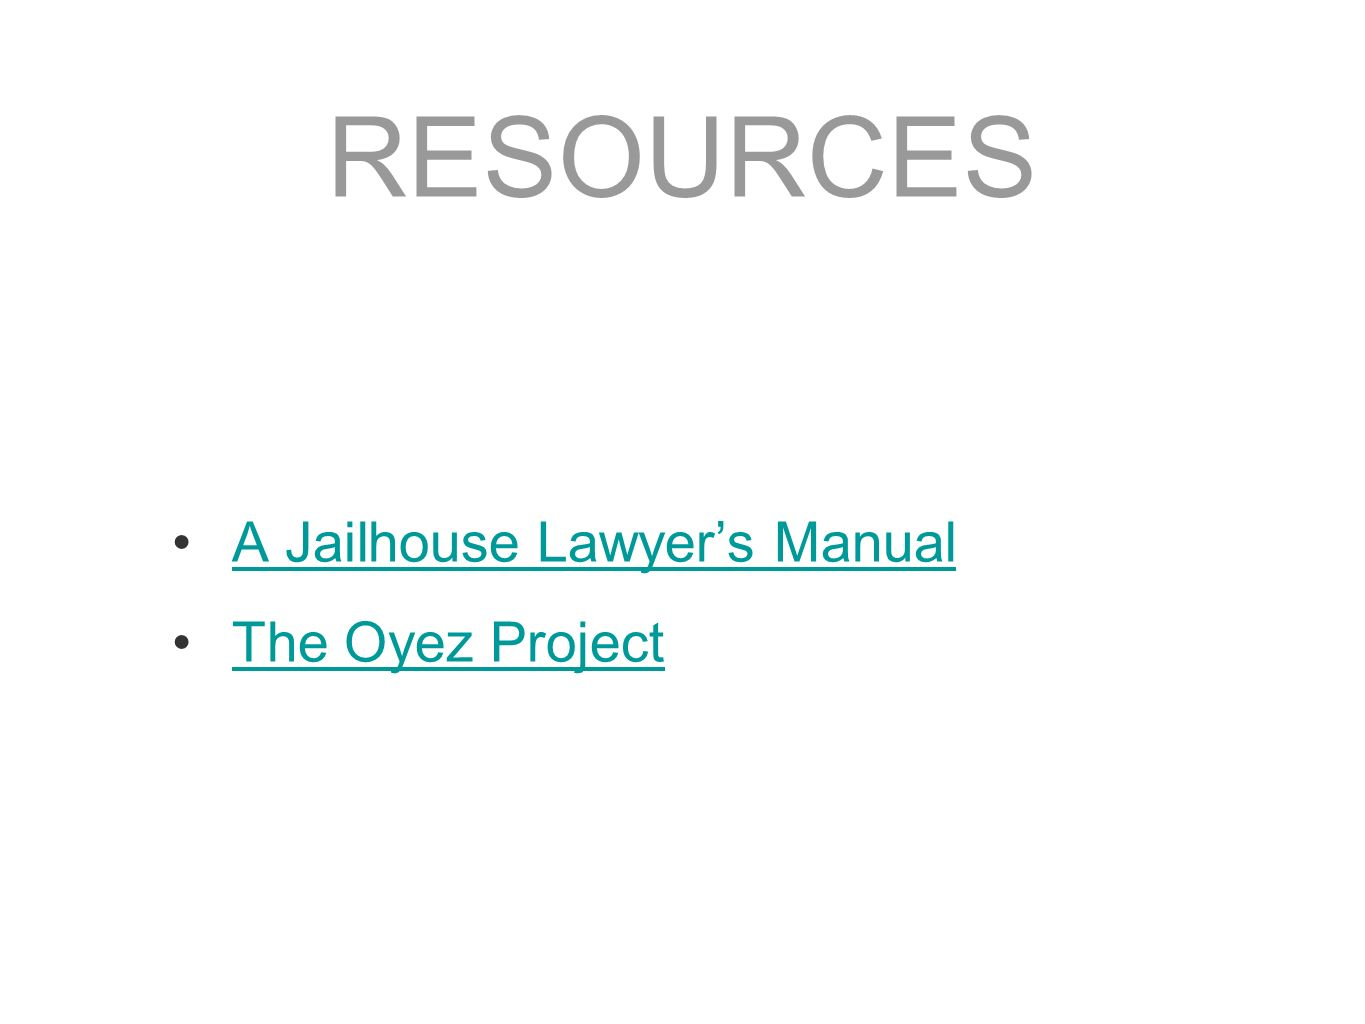 RESOURCES A Jailhouse Lawyer's Manual The Oyez Project